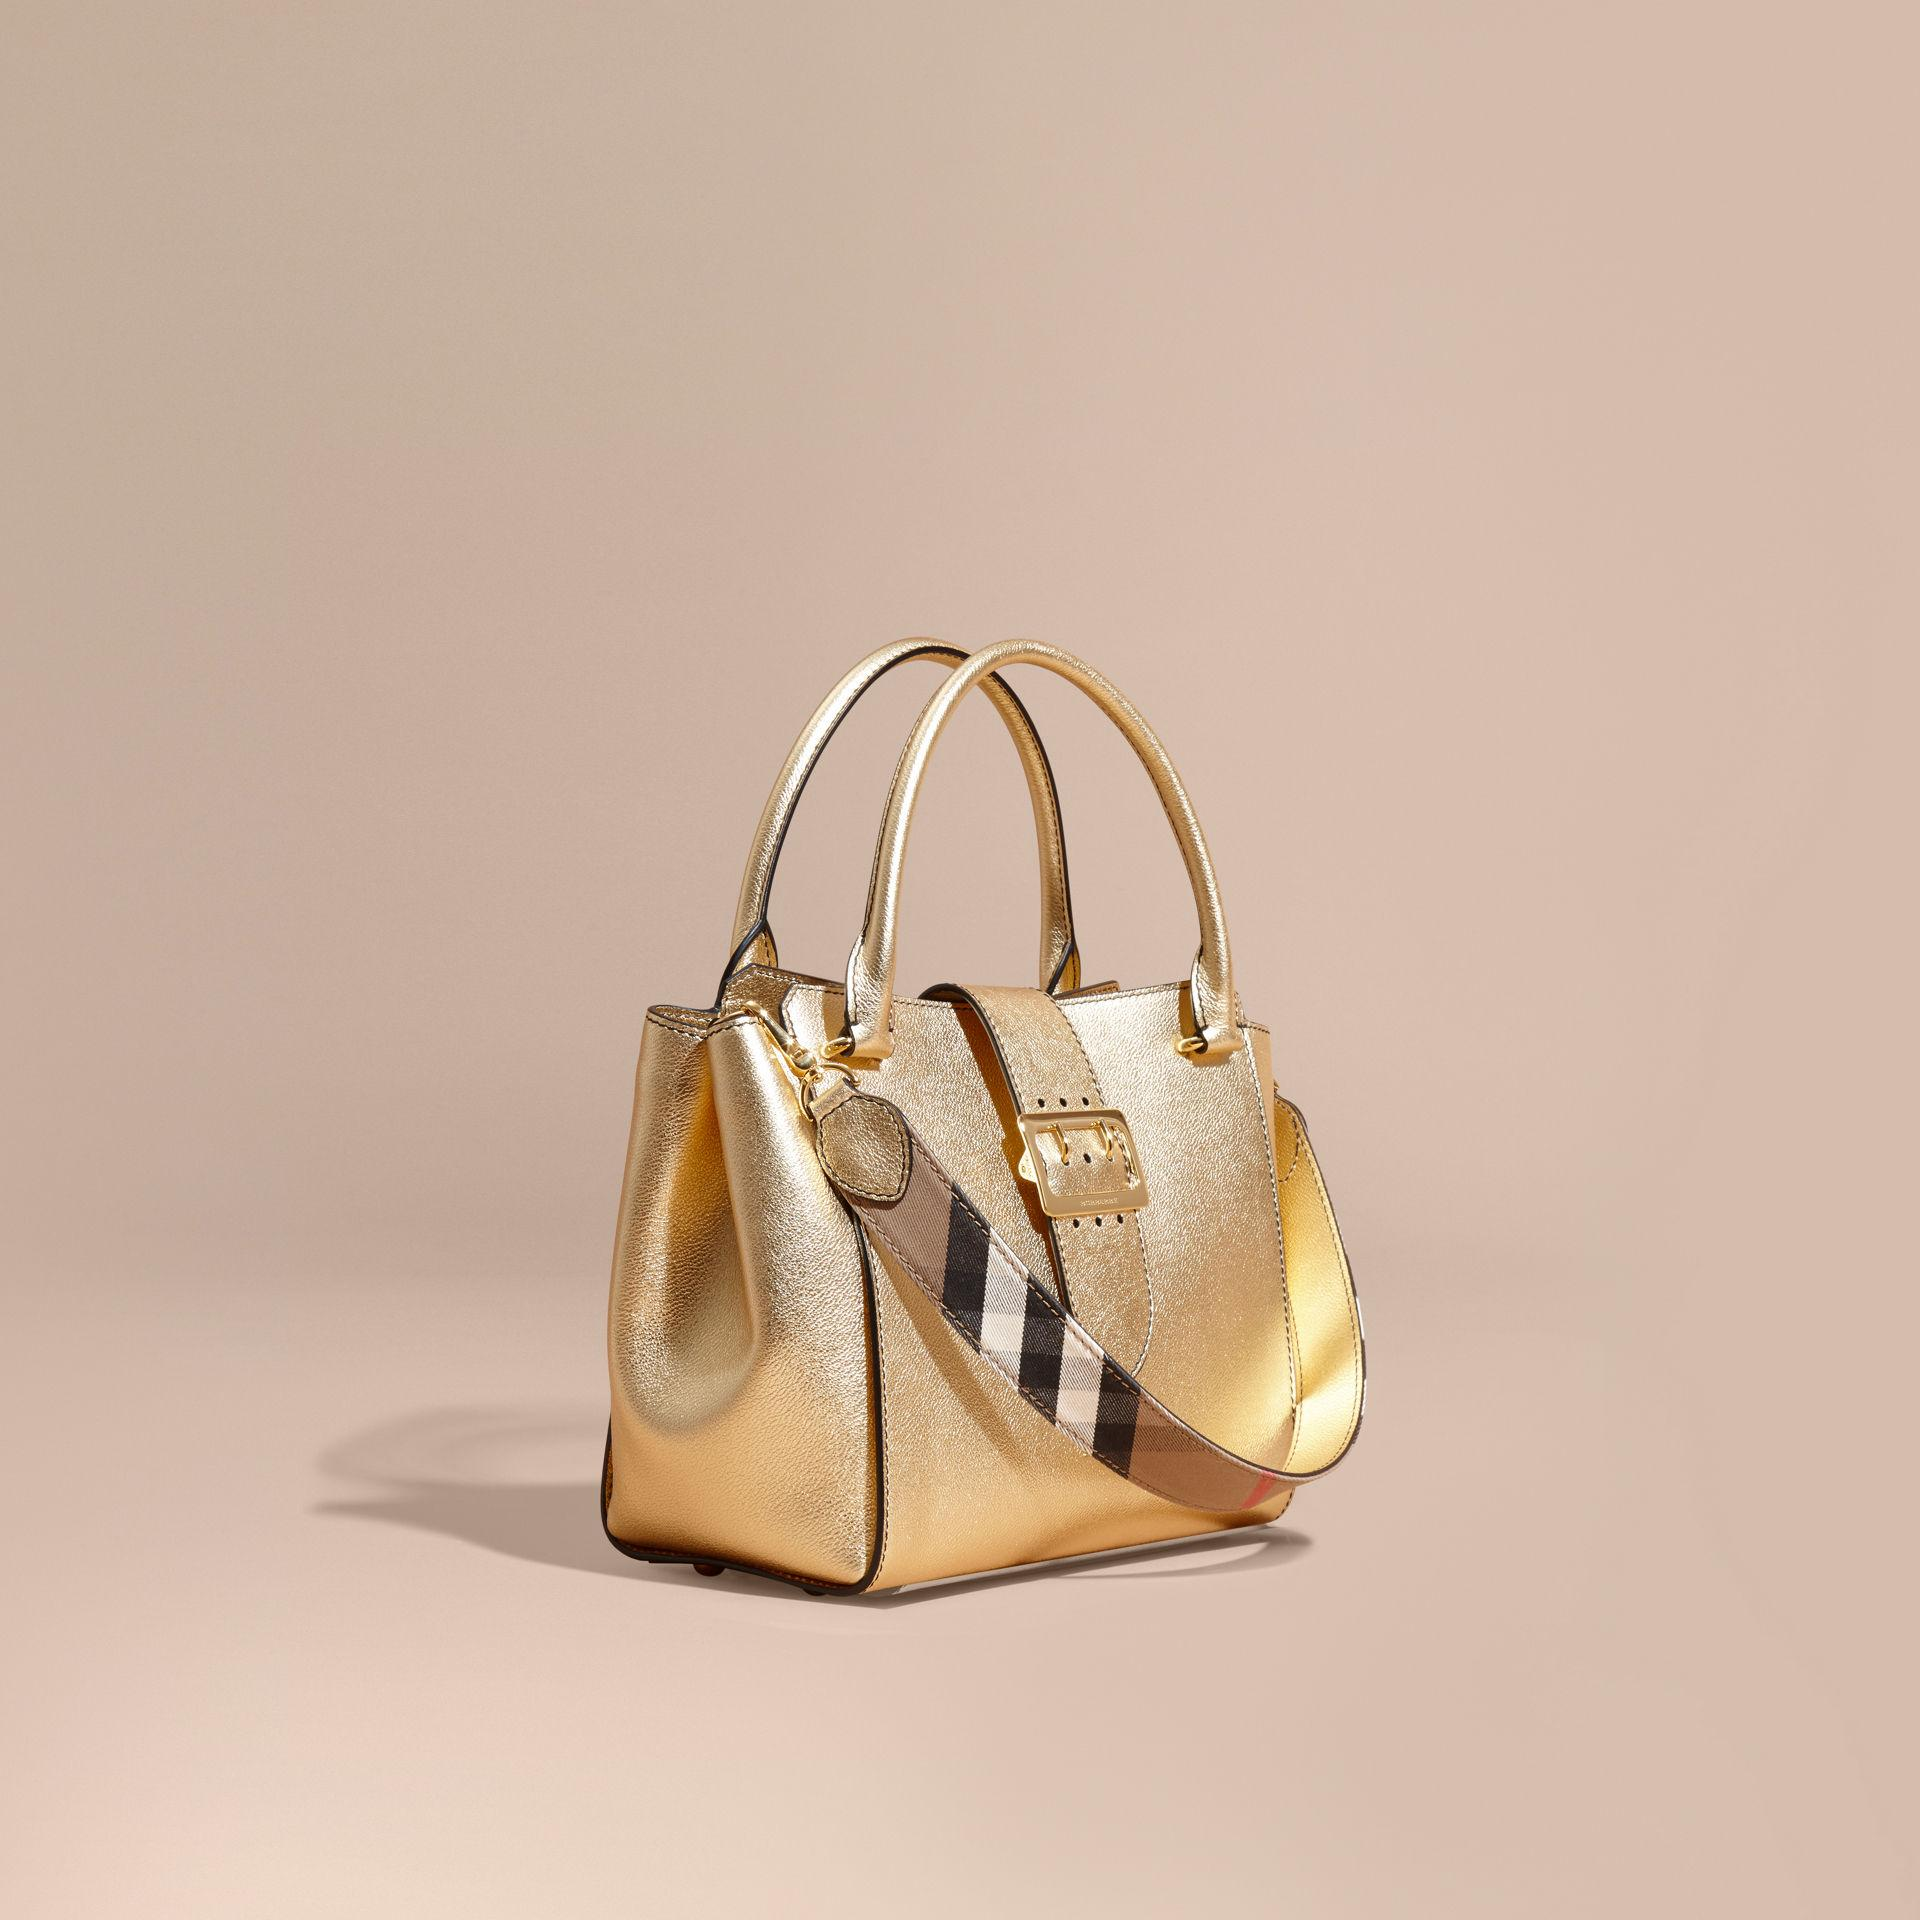 0adc4486a4 Burberry The Medium Buckle Tote In Metallic Leather in Metallic - Lyst